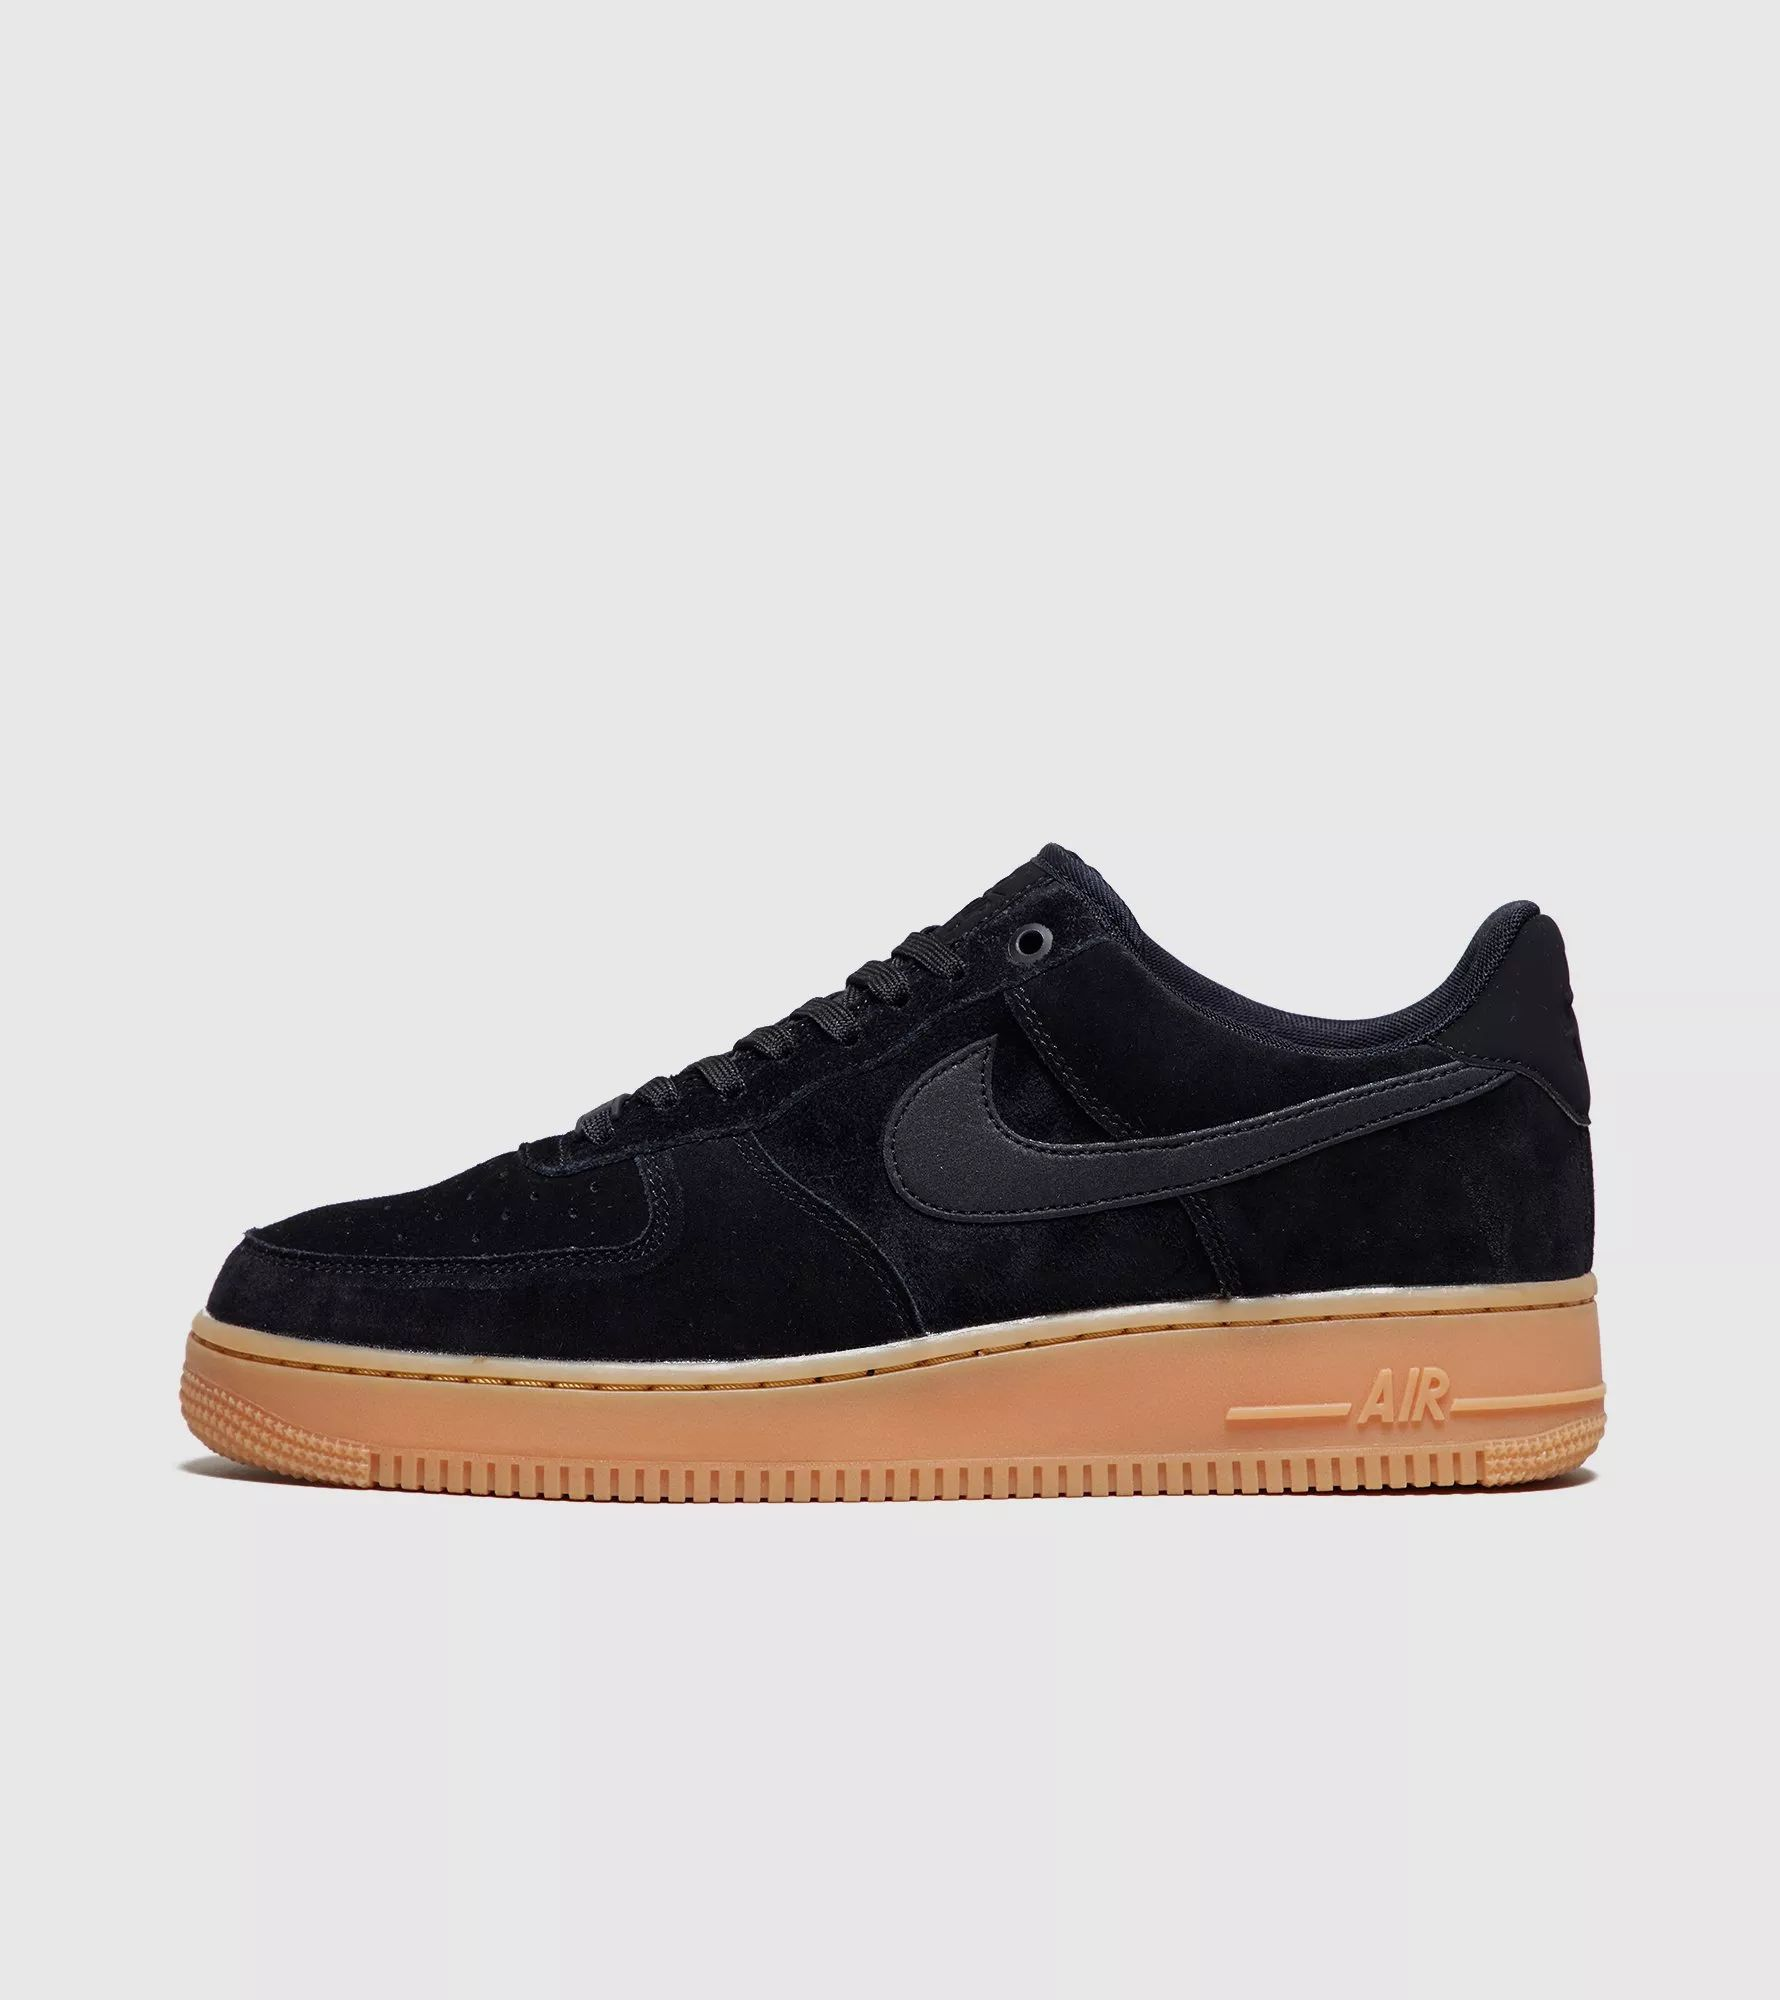 Nike Air Force 1 lv8 suede black gum medium brown(画像あり)